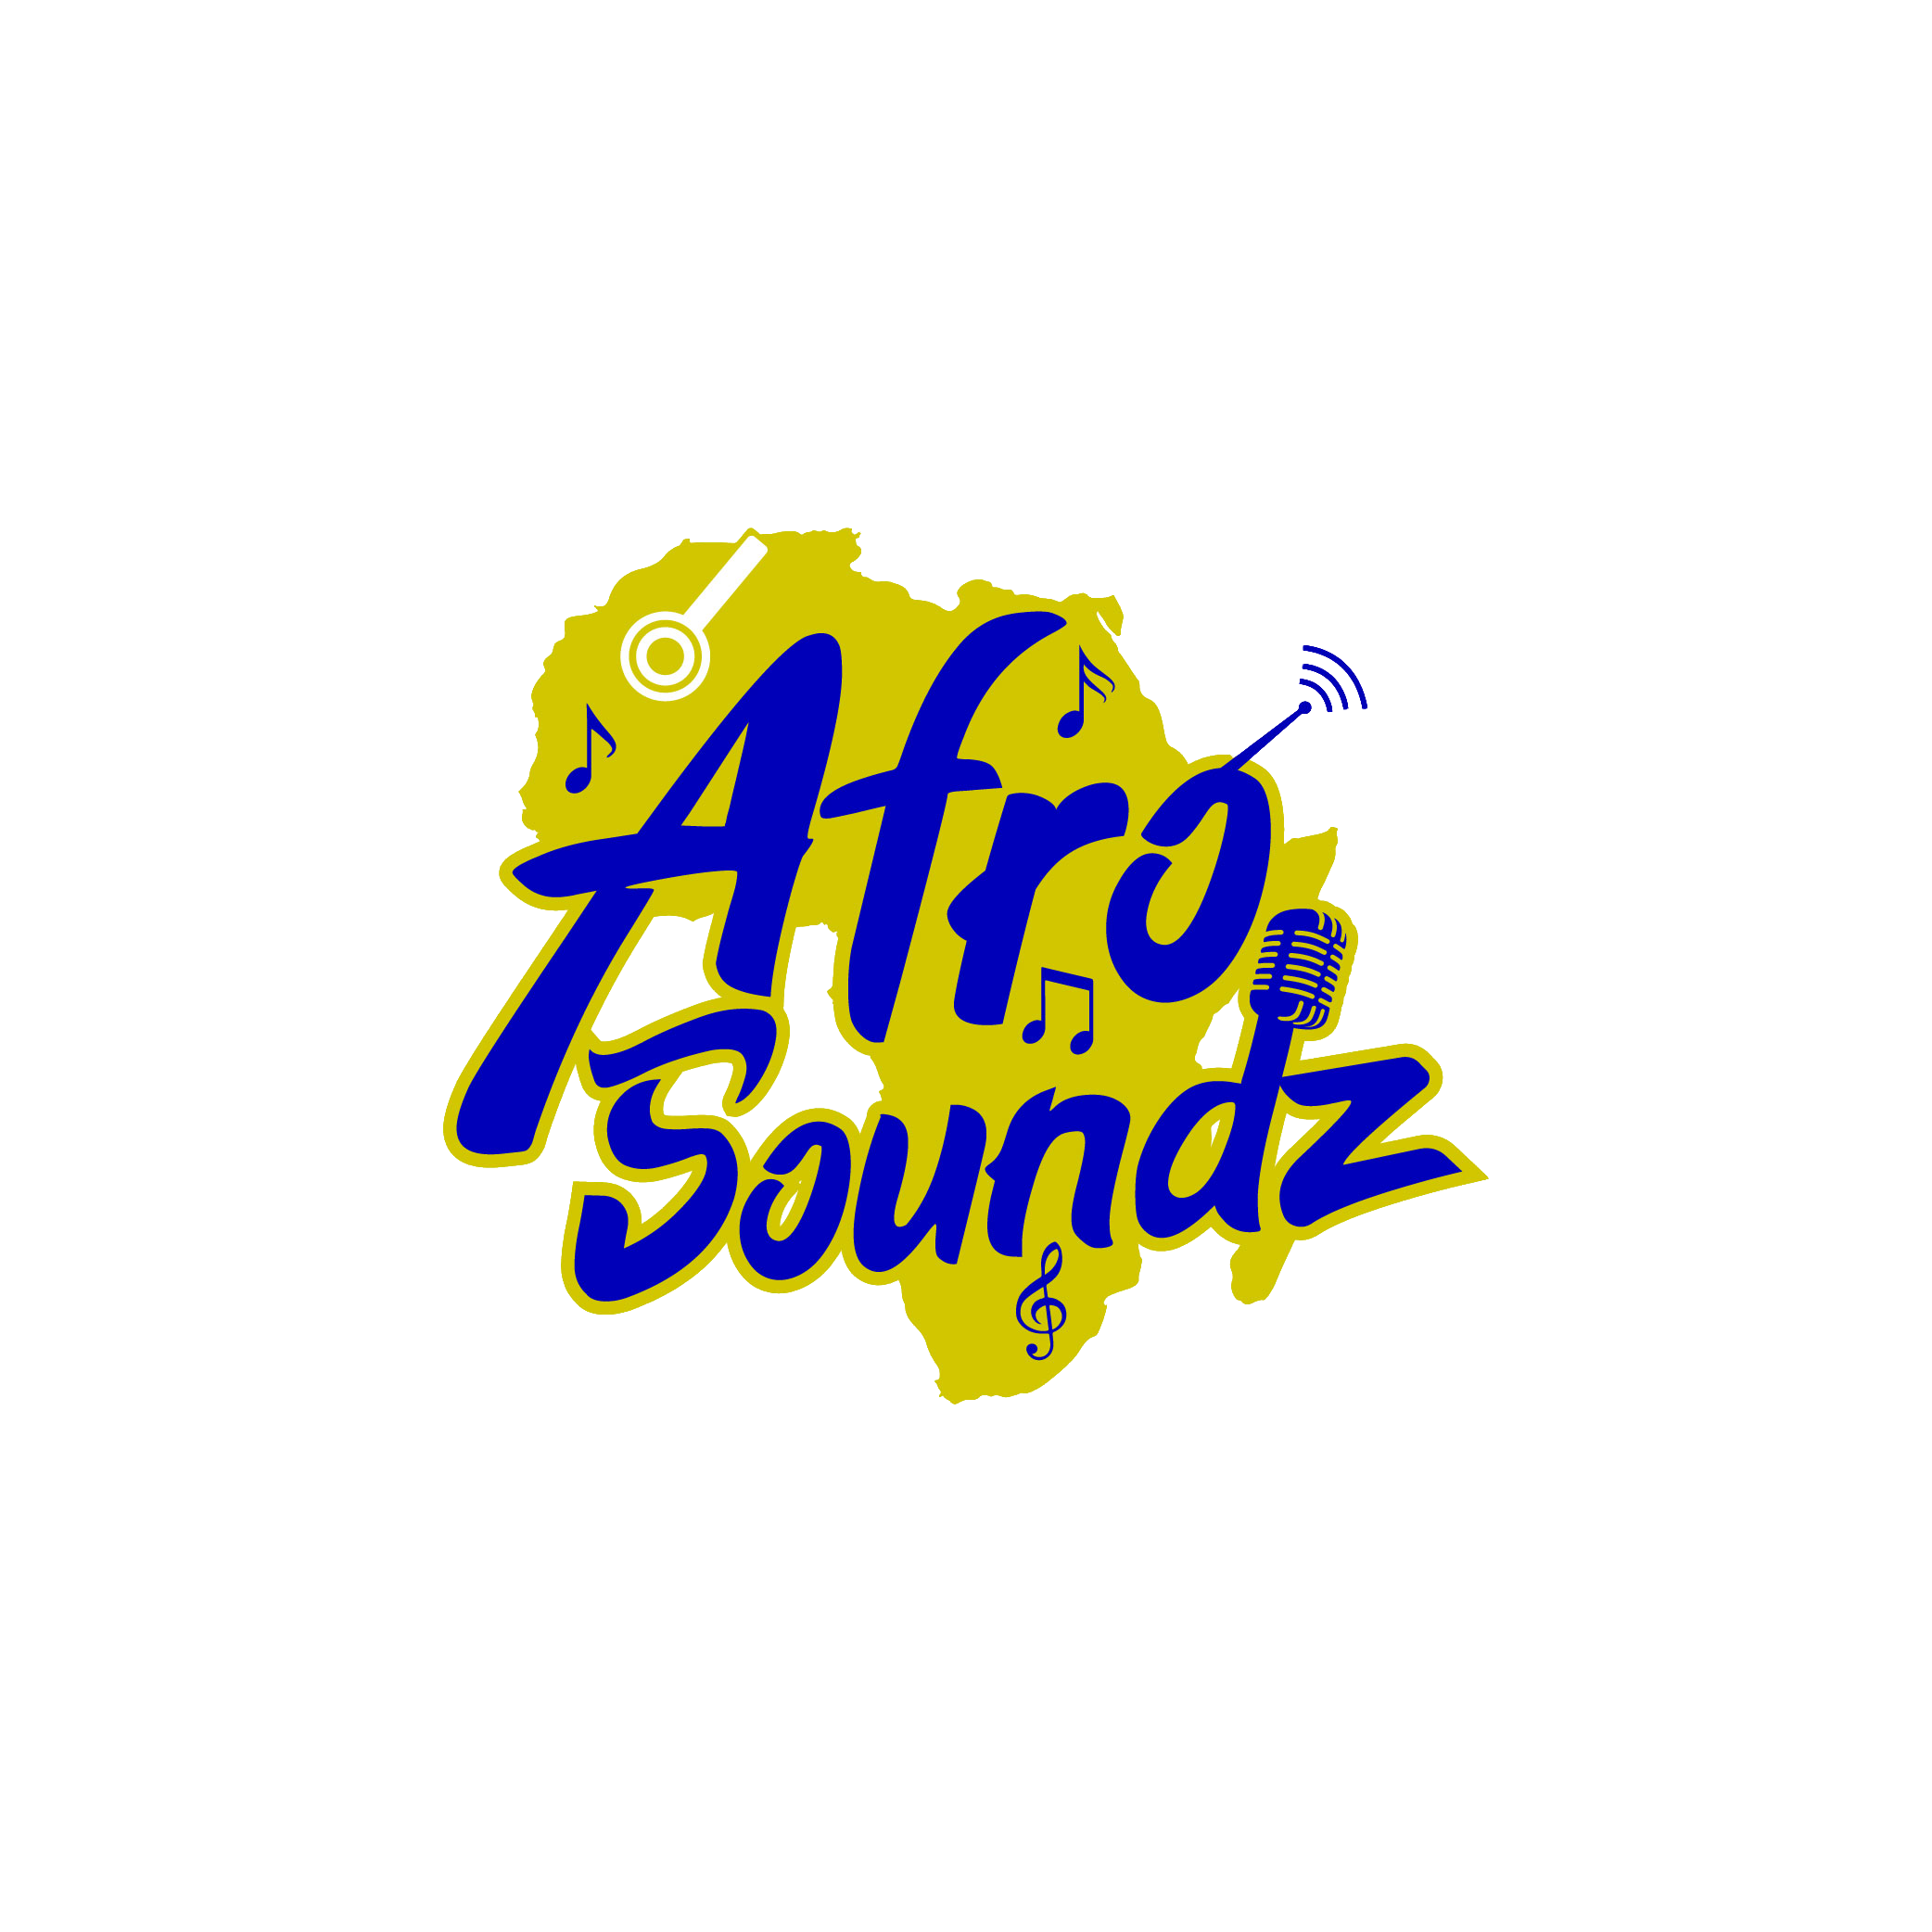 Art for Afro Sounds ID 1 by Afrosoundz